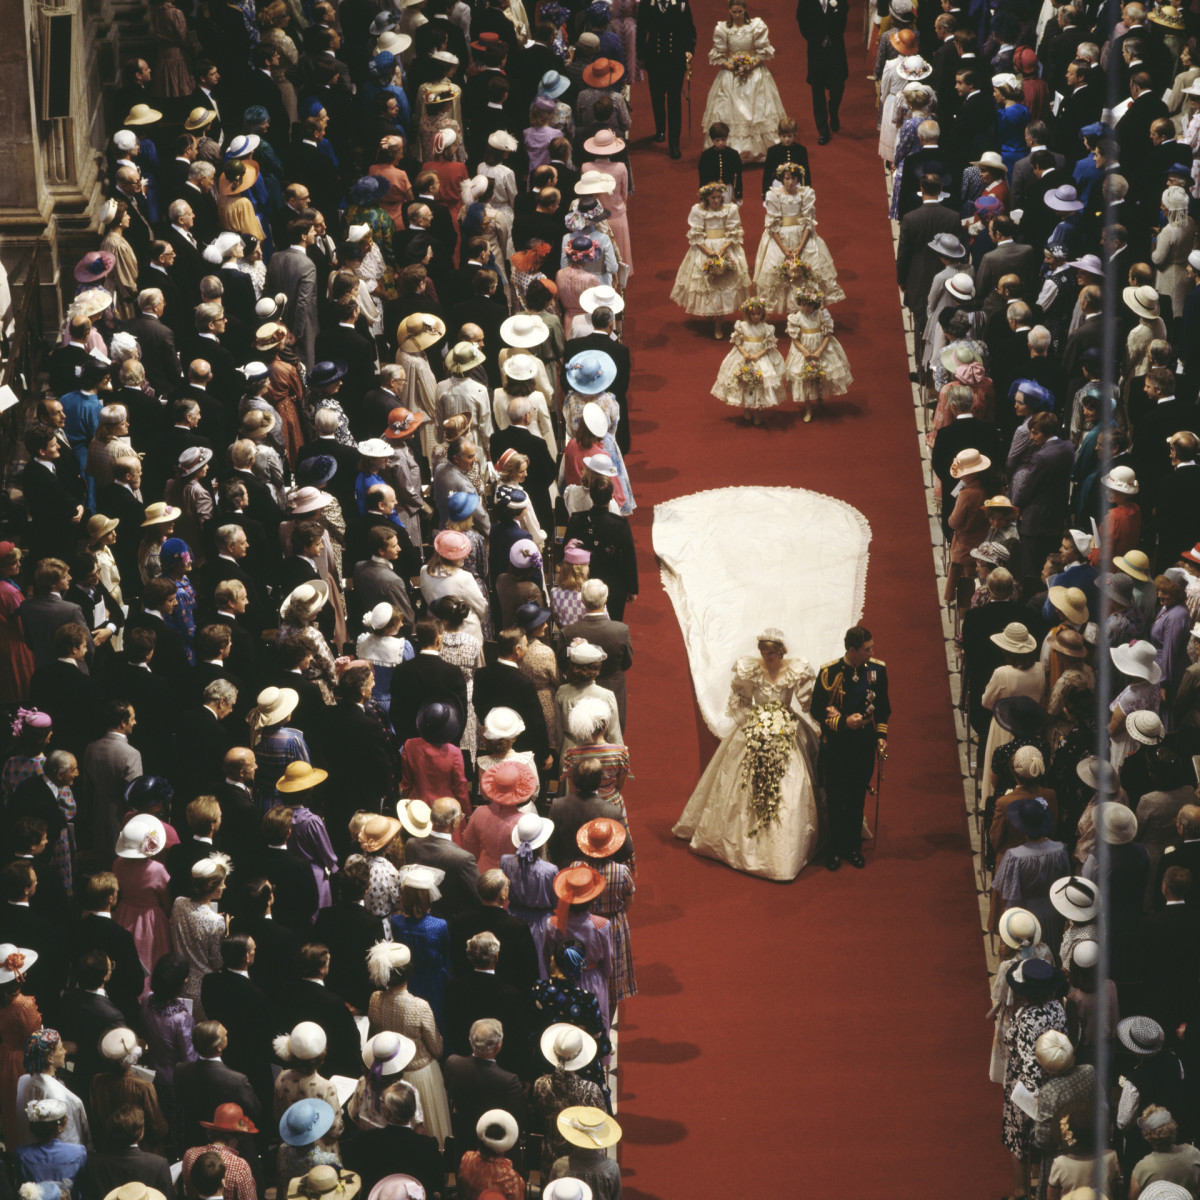 The wedding of Charles, Prince of Wales, and Lady Diana Spencer in St Paul's Cathedral, July 29, 1981.